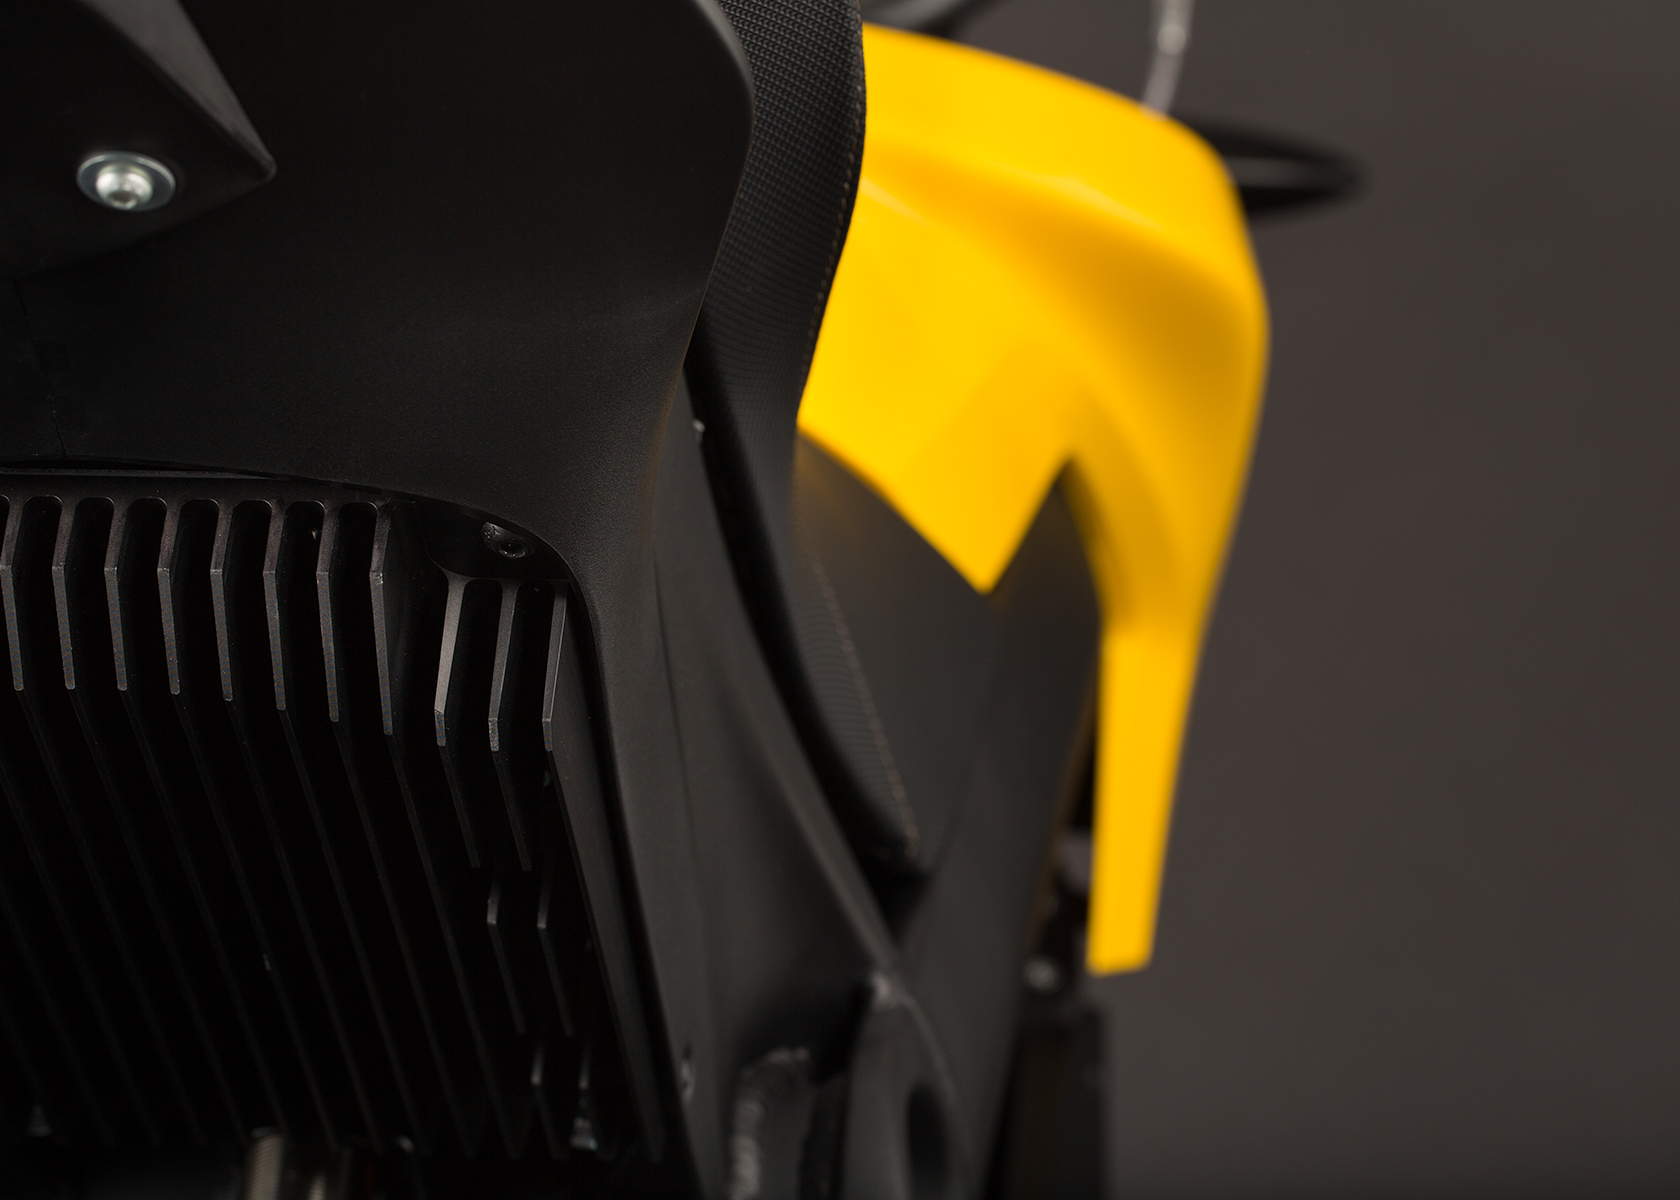 2014 Zero S Electric Motorcycle: Heatsink